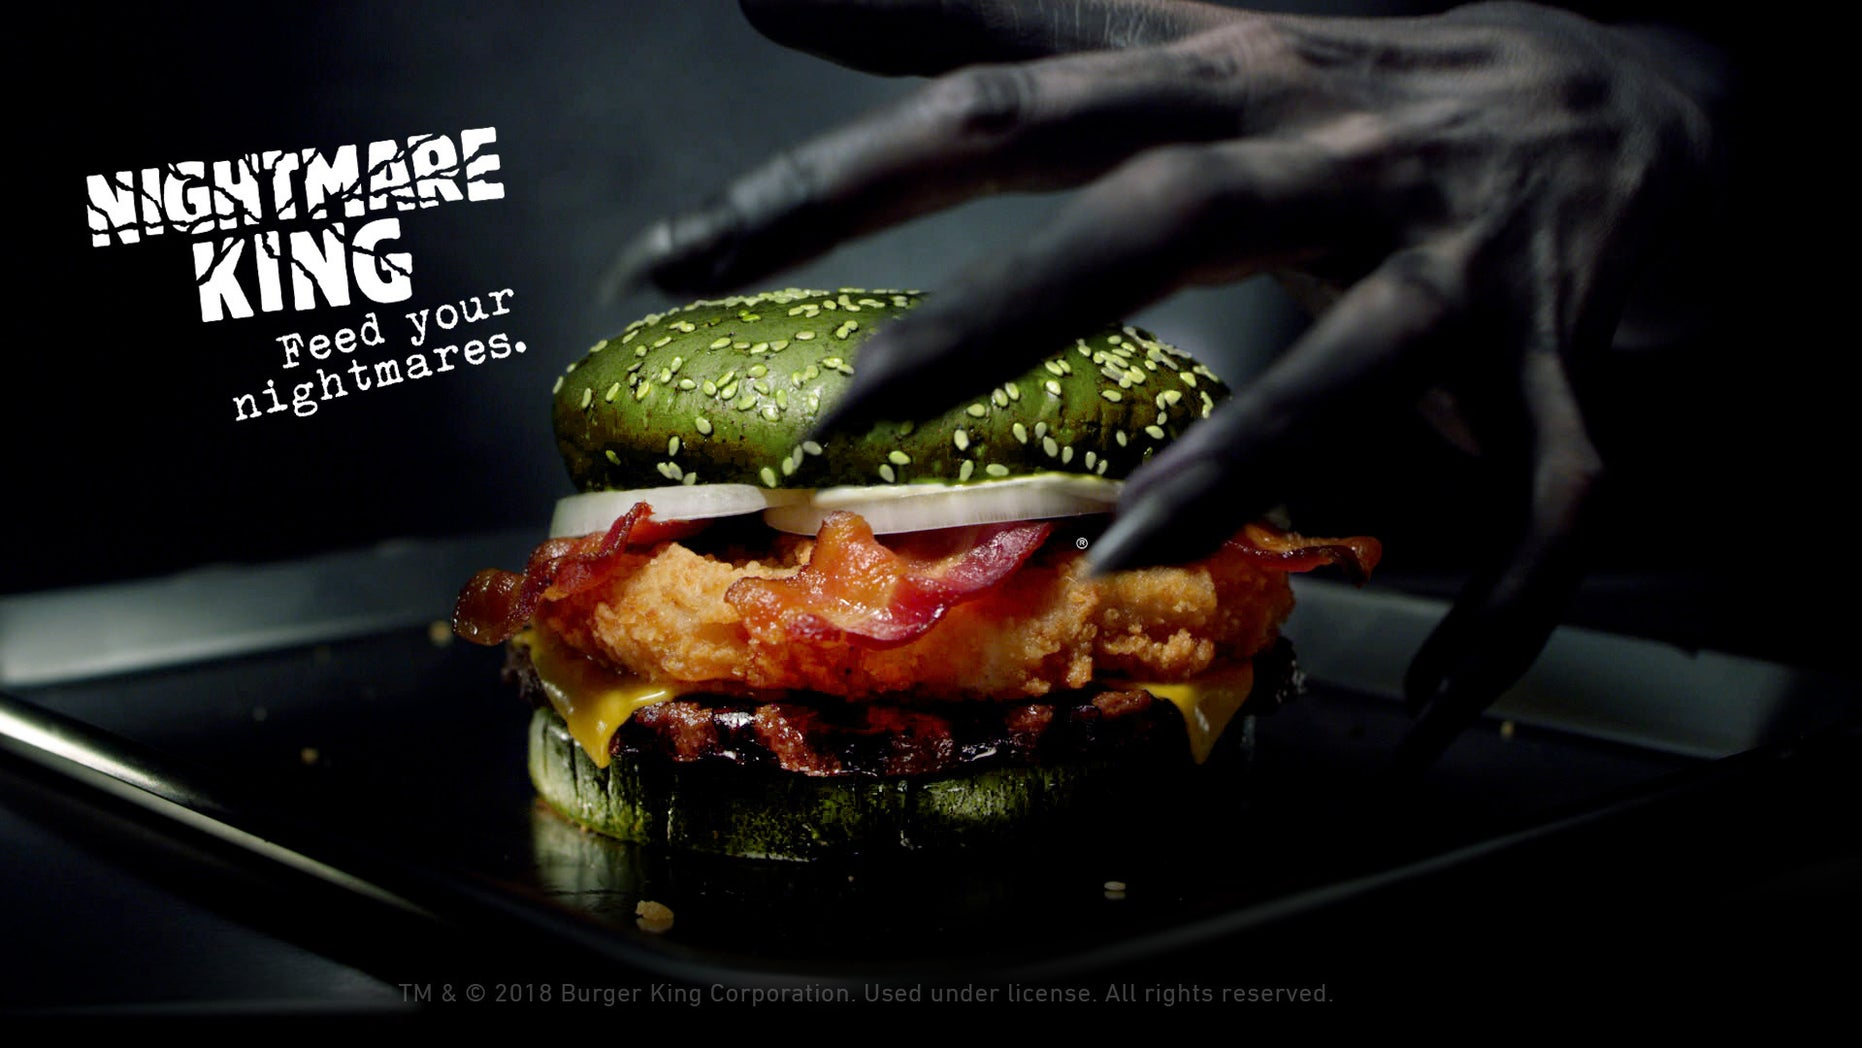 Burger King is releasing a green burger stuffed with chicken, beef and bacon just in time for Halloween.